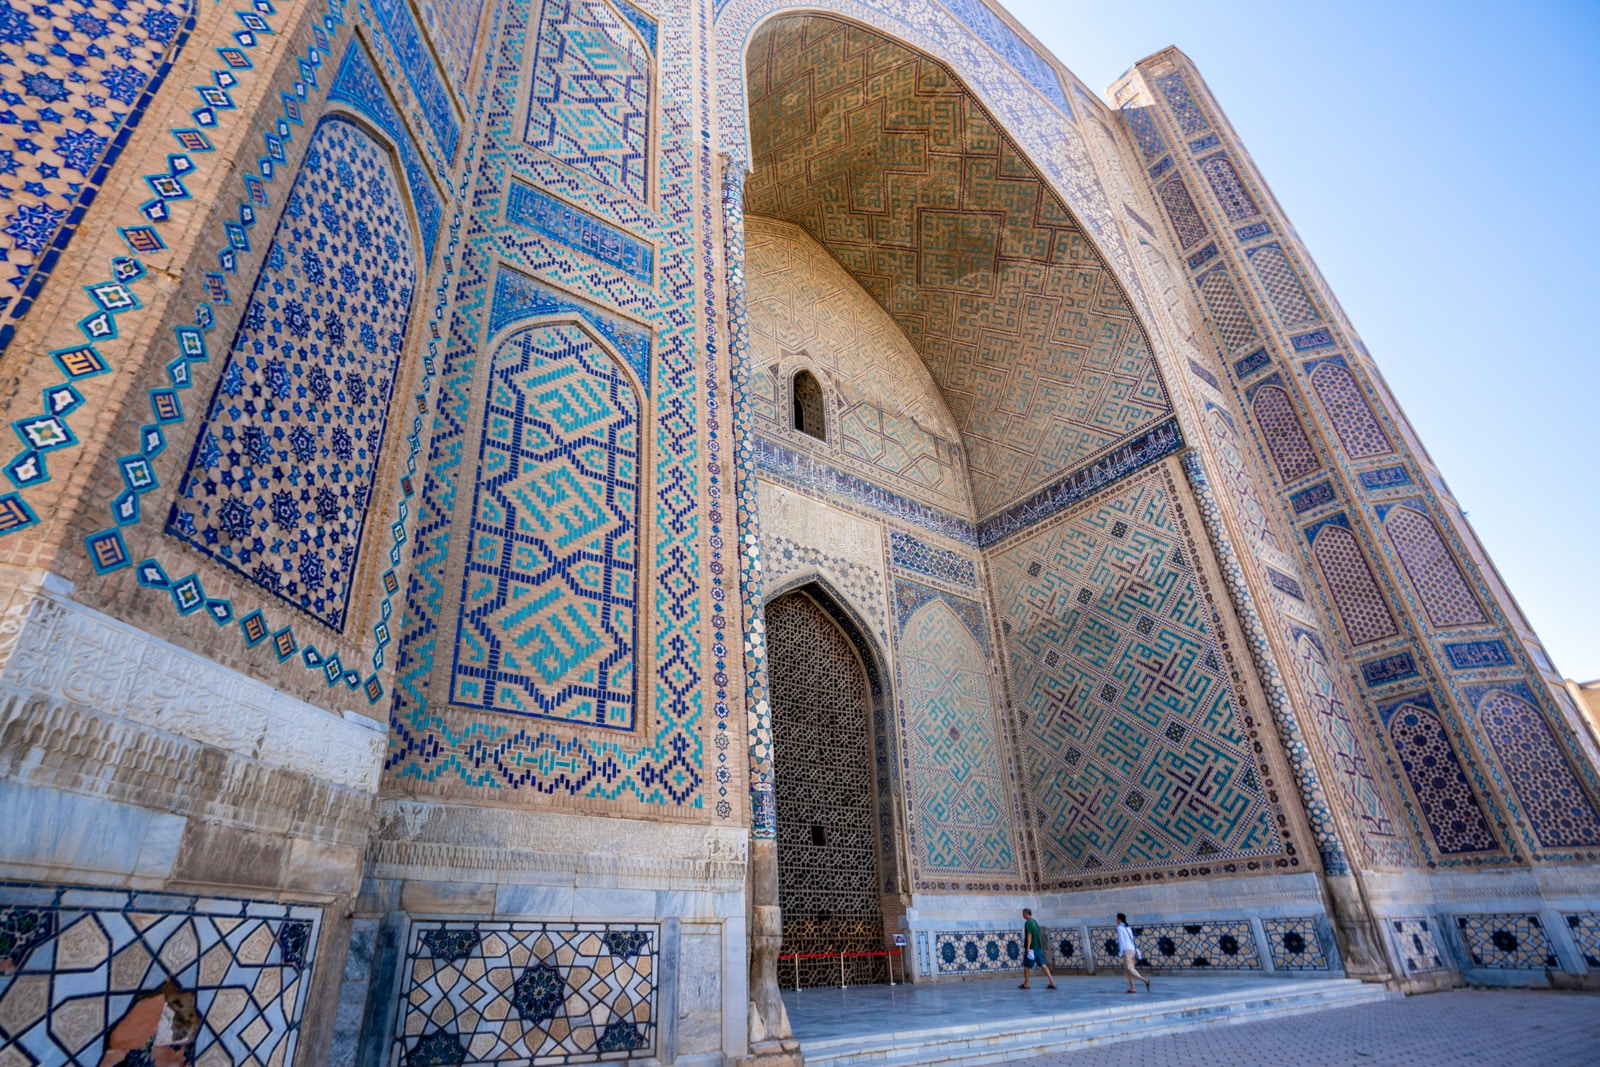 Exterior of the Bibi Khanum mosque in Samarkand, Uzbekistan